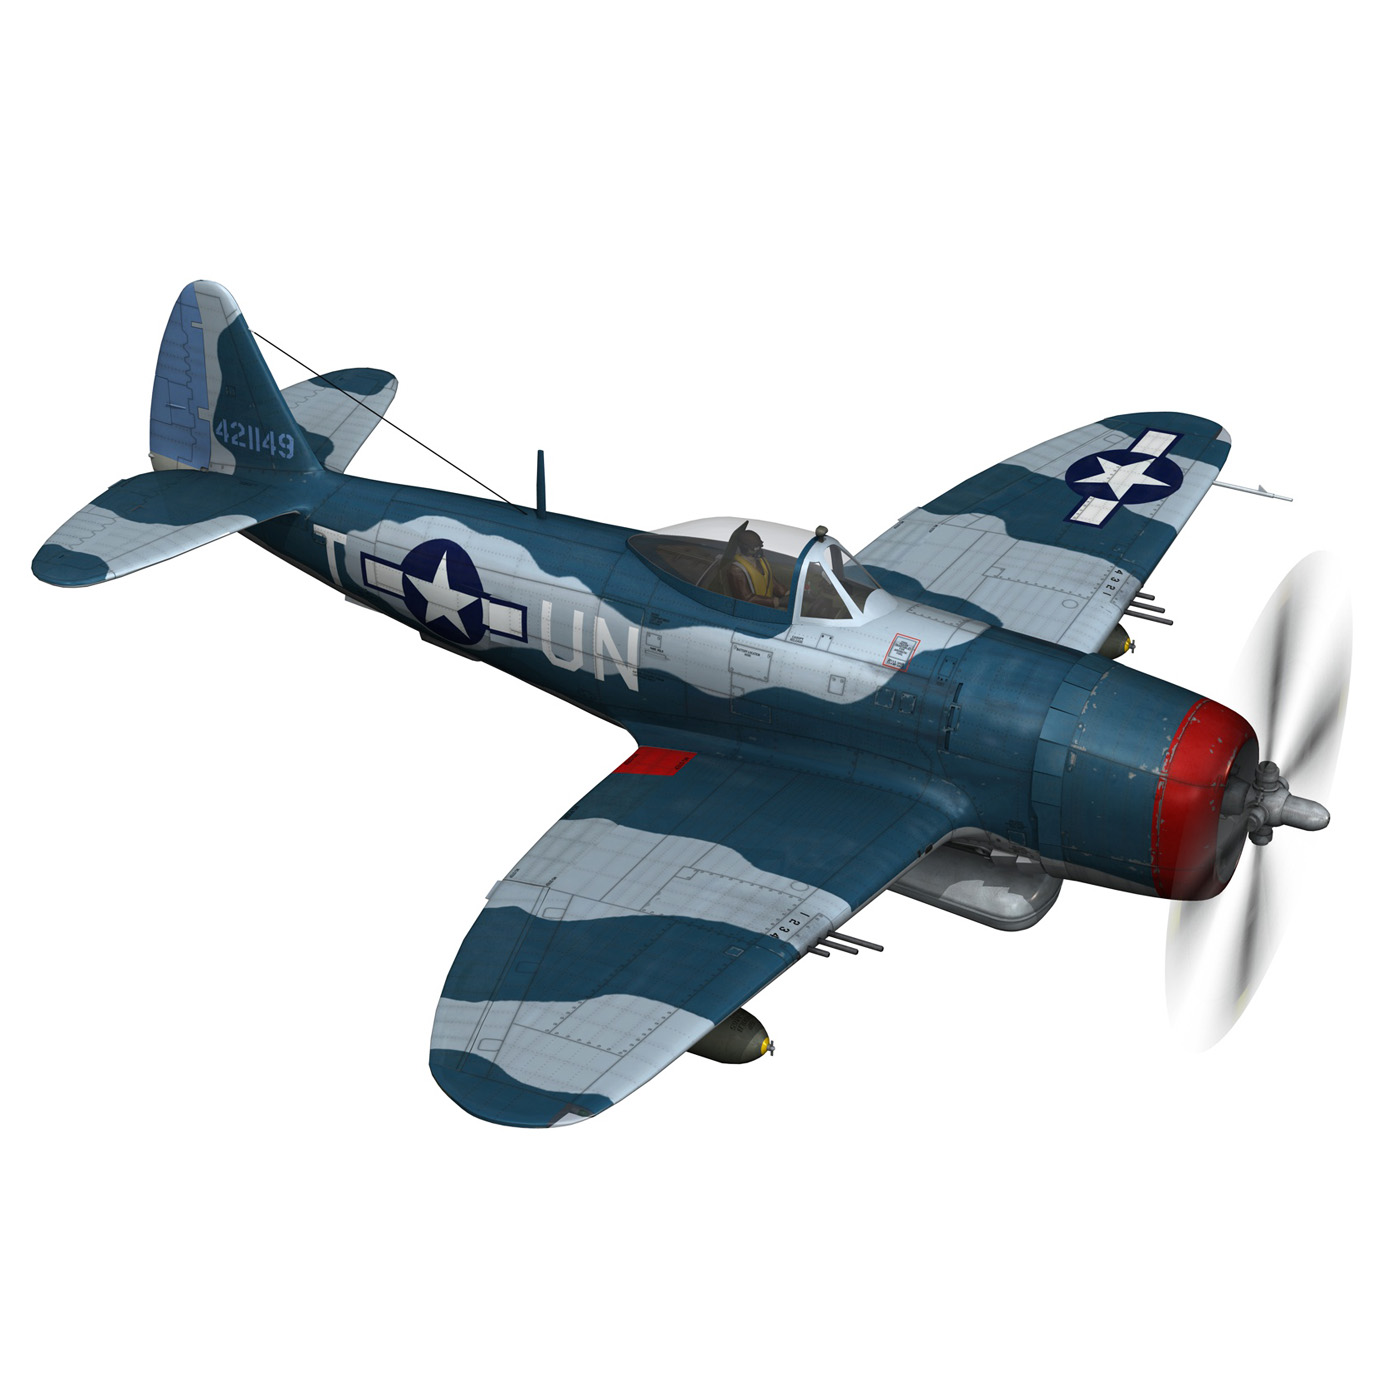 republic p-47 thunderbolt – ole miss lib 3d model fbx c4d lwo obj 274280